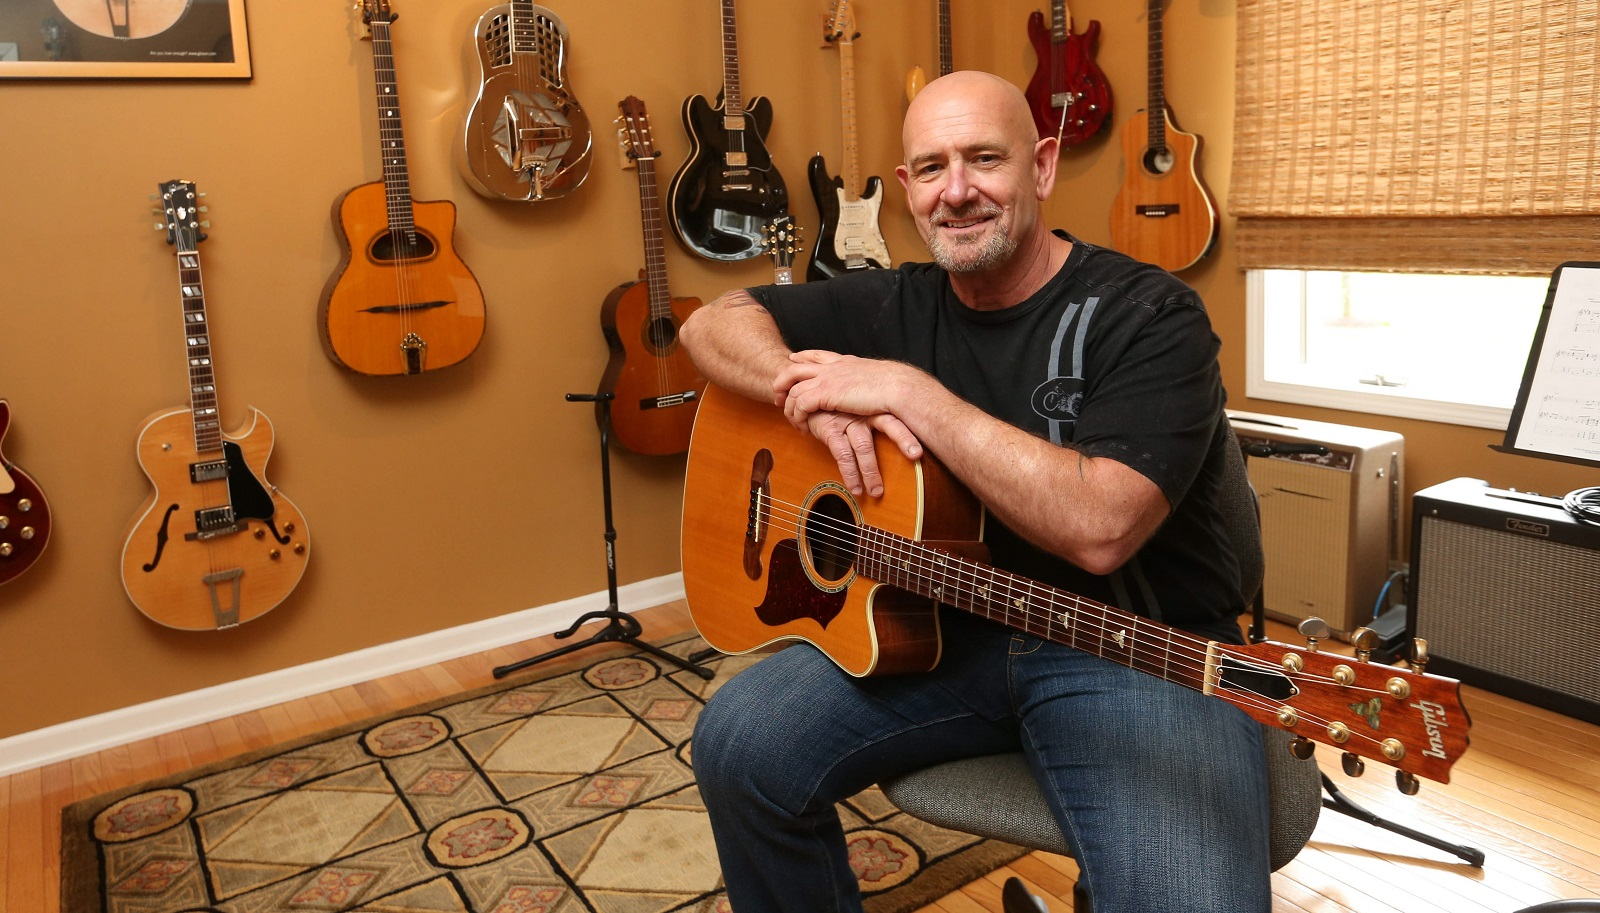 Rick Woodman has a guitar room in his house. On display are 25 or so guitars as well as harmonicas, ukuleles, a mandolin and a viola. He goes in there to play and relax. (Sharon Cantillon/Buffalo News)